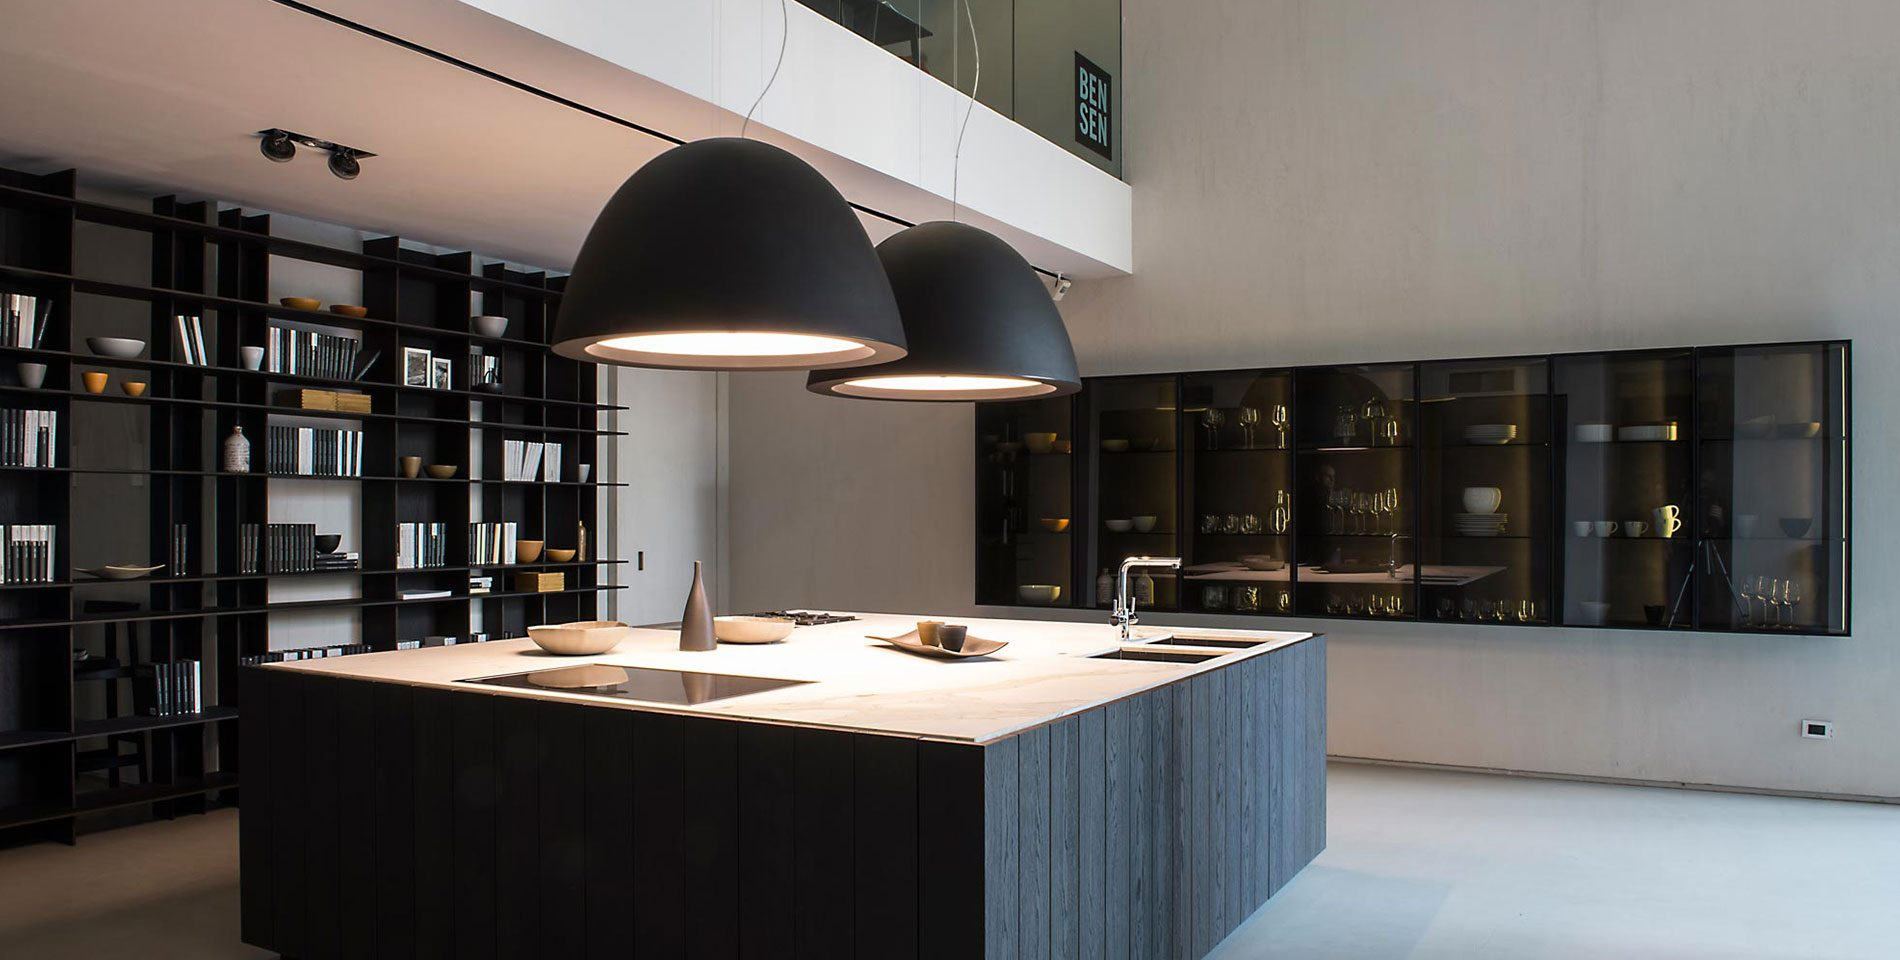 Luci Led Per Cucina kitchen lighting with panzeri lights - panzeri